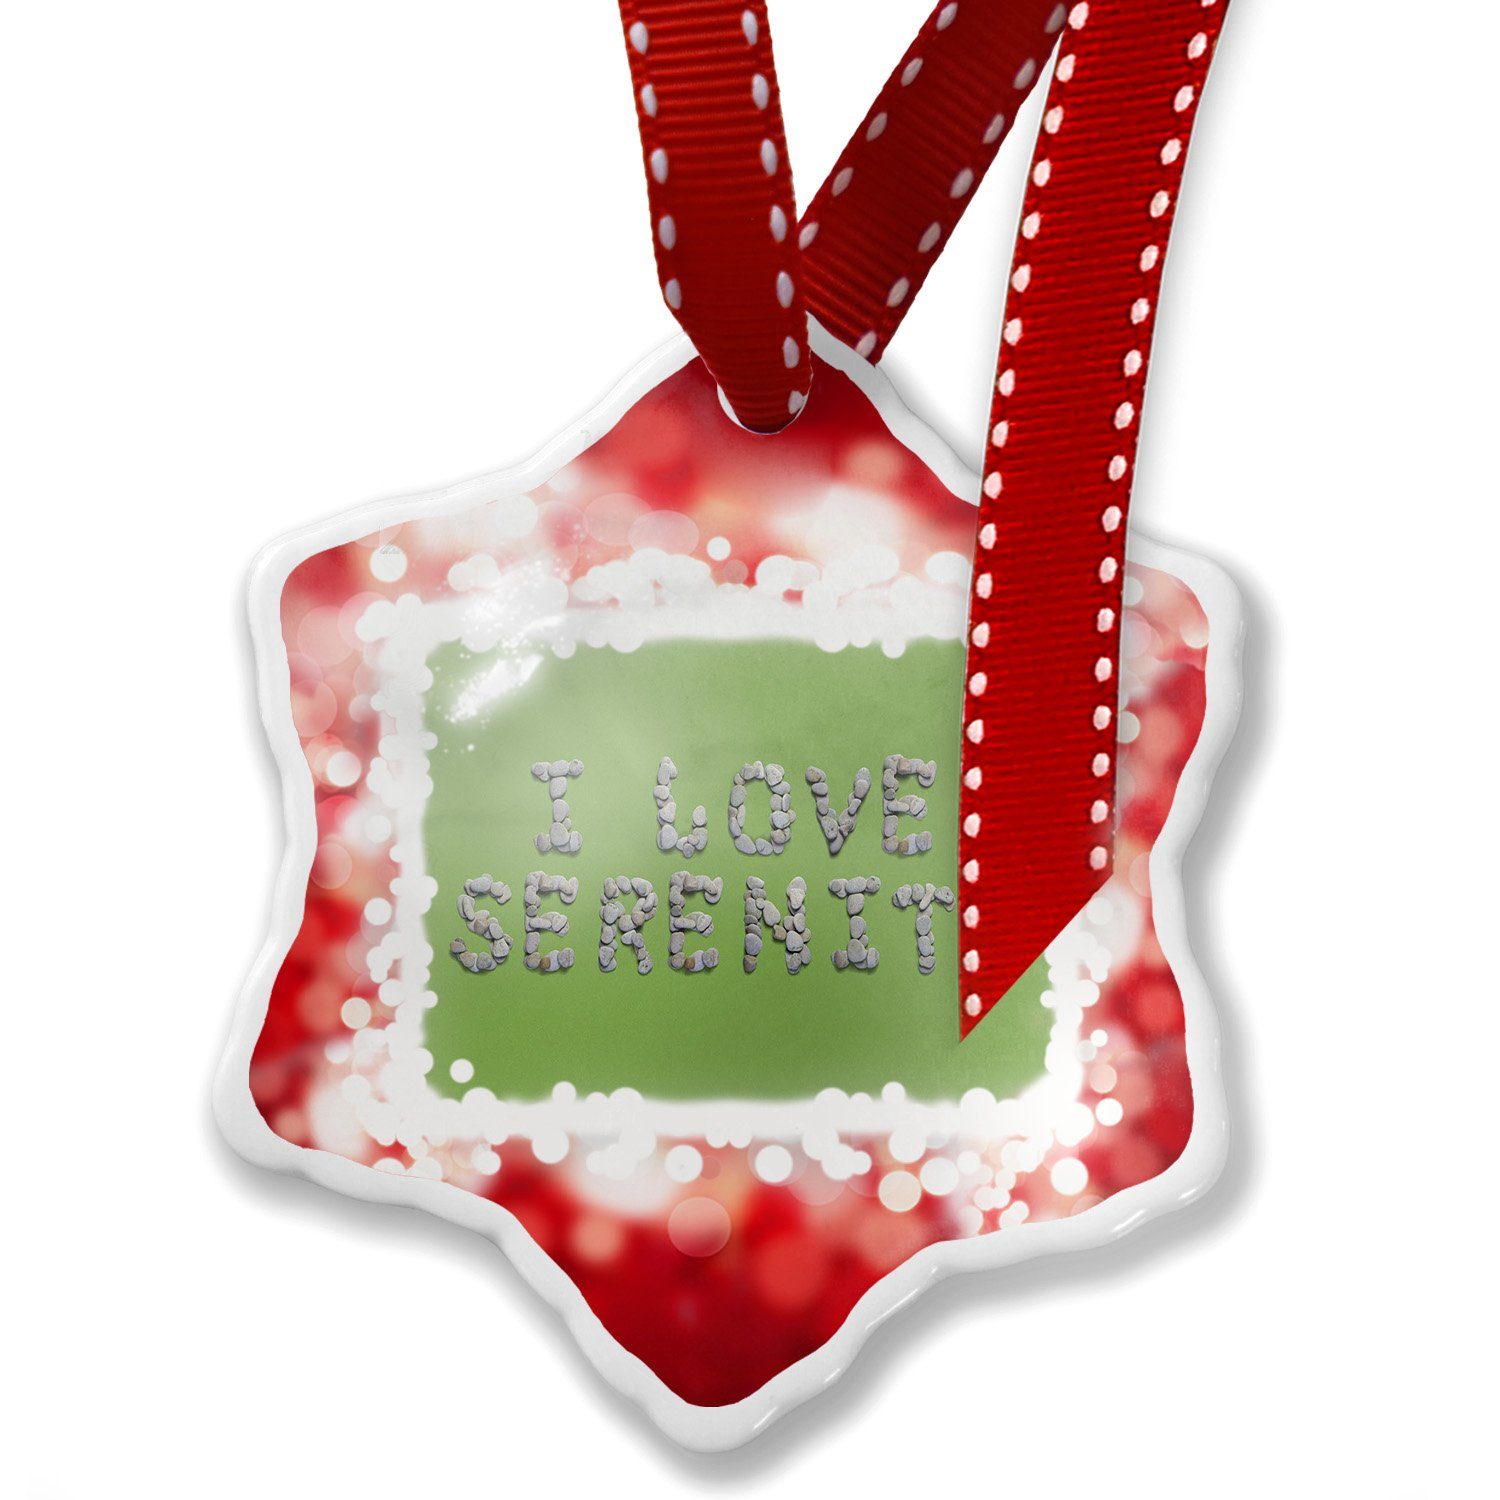 Christmas Ornament I Love Serenity Spa Stones Rocks, red - Neonblond